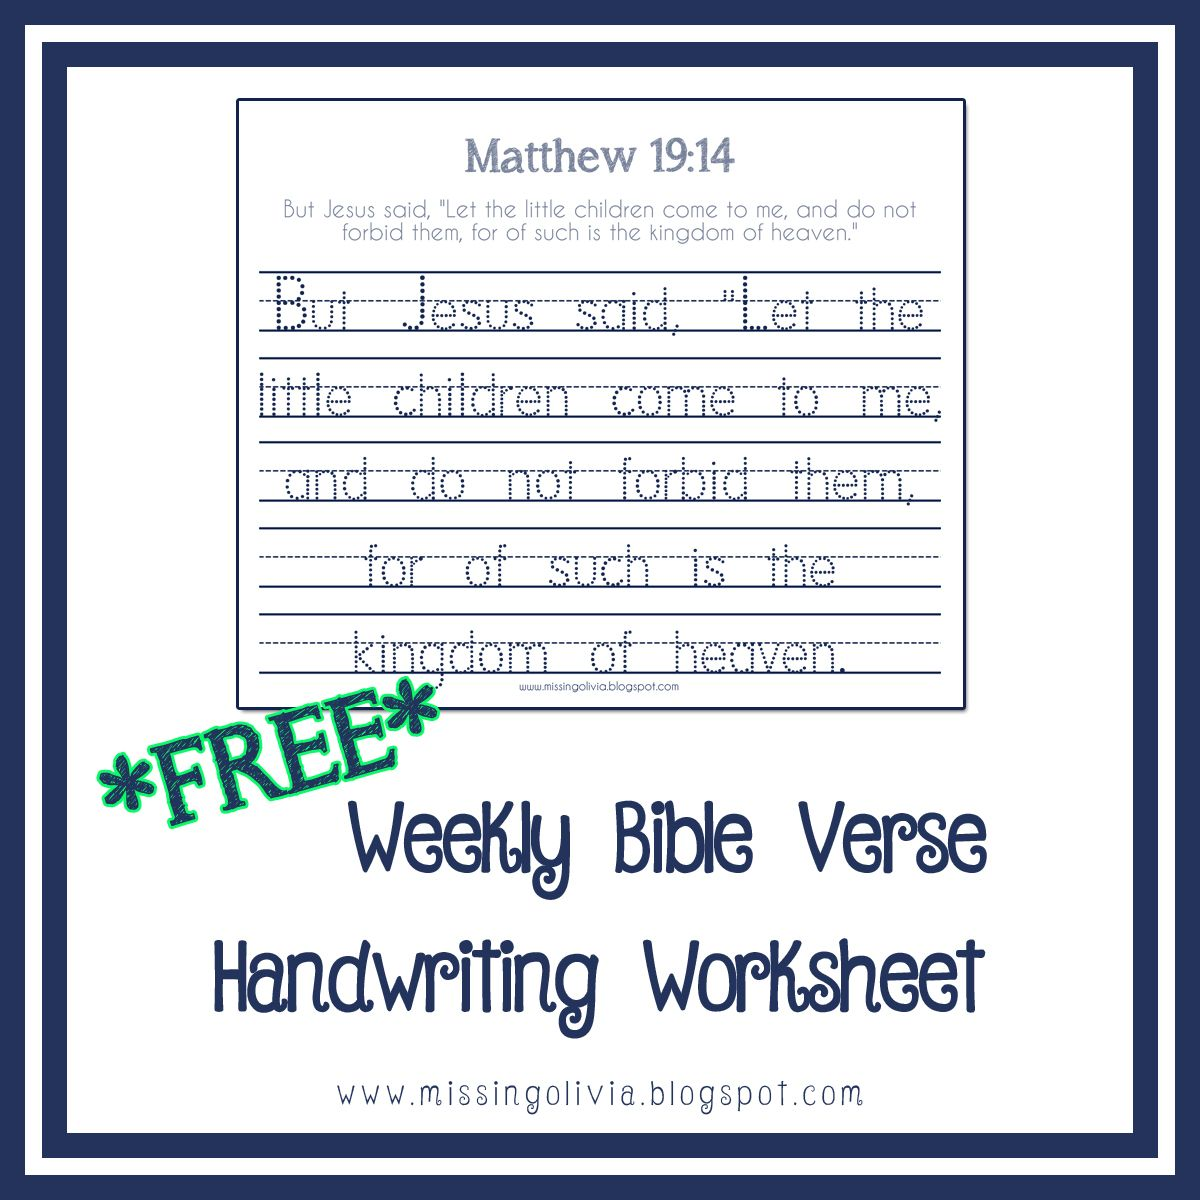 Workbooks www.handwriting worksheets.com : Free Bible Verse Handwriting Worksheet. Life As A Moore ...